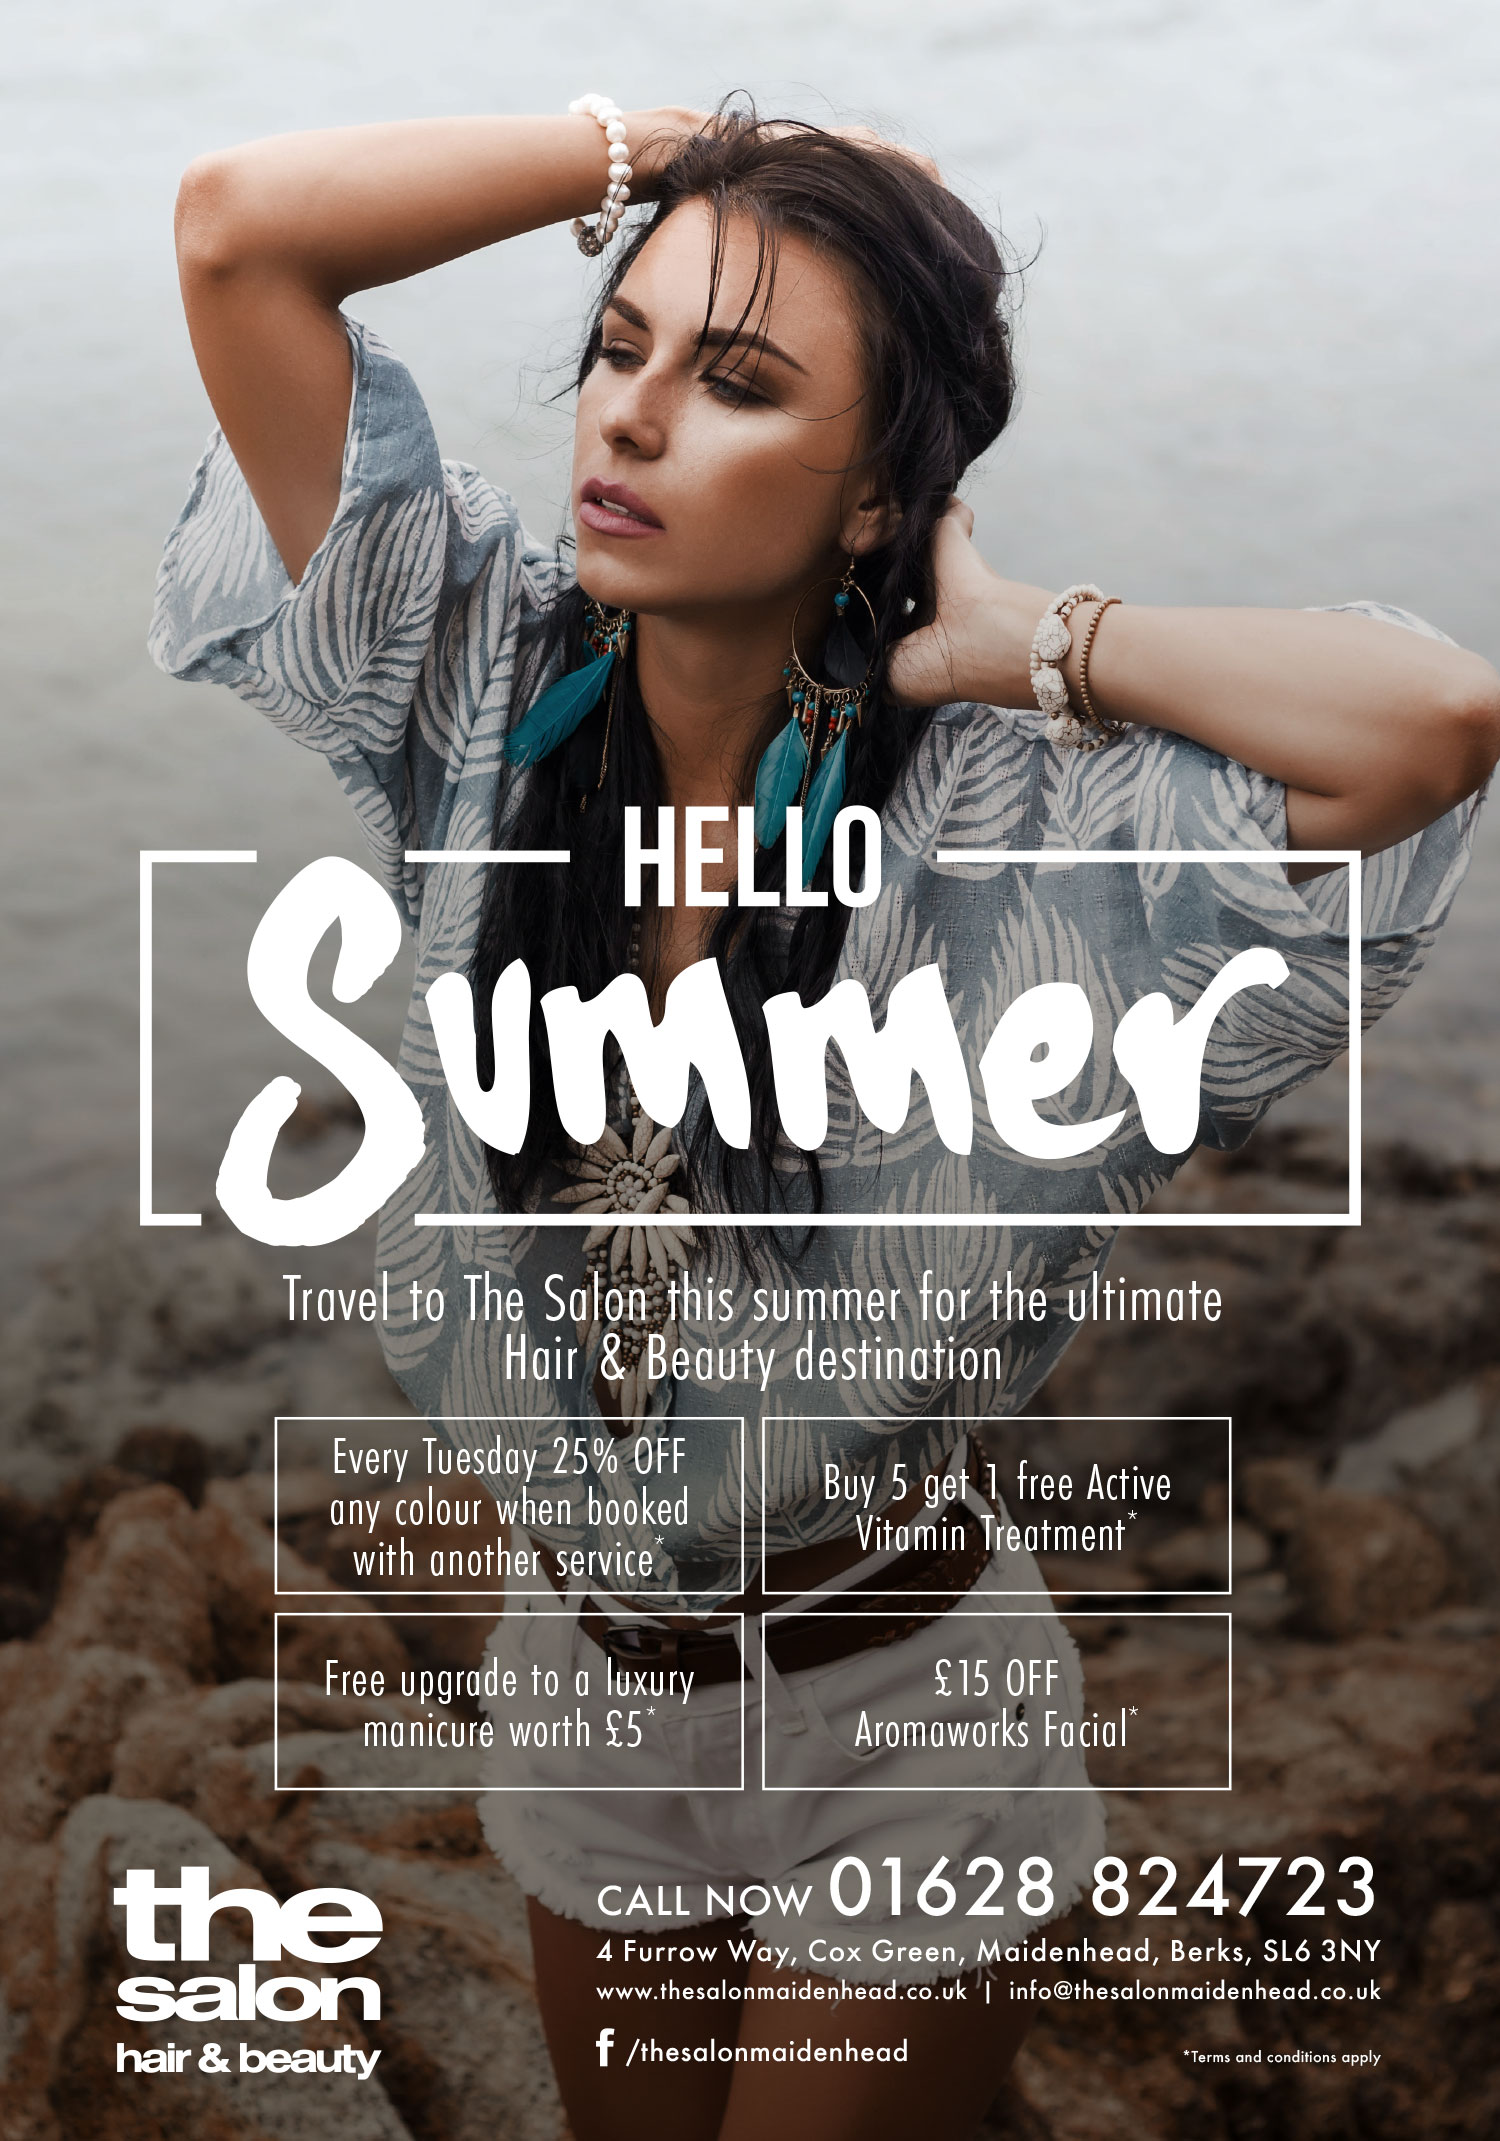 The Salon Hello Summer Full Poster